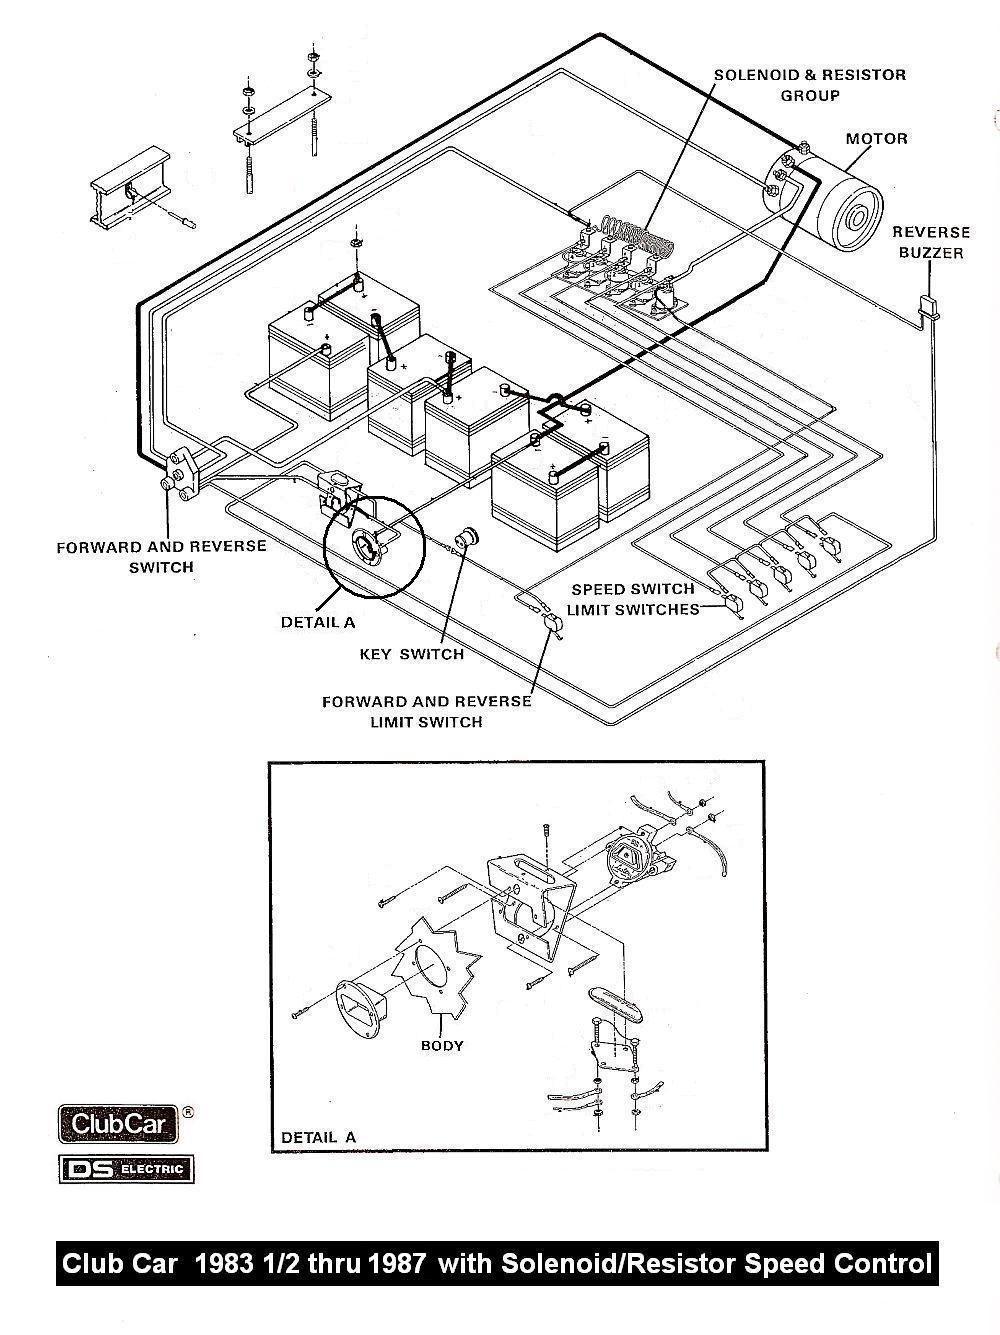 0e8d045370be7682b159825224221faa vintagegolfcartparts com *freezer & crock pot* pinterest gas club car wiring diagram free at mifinder.co